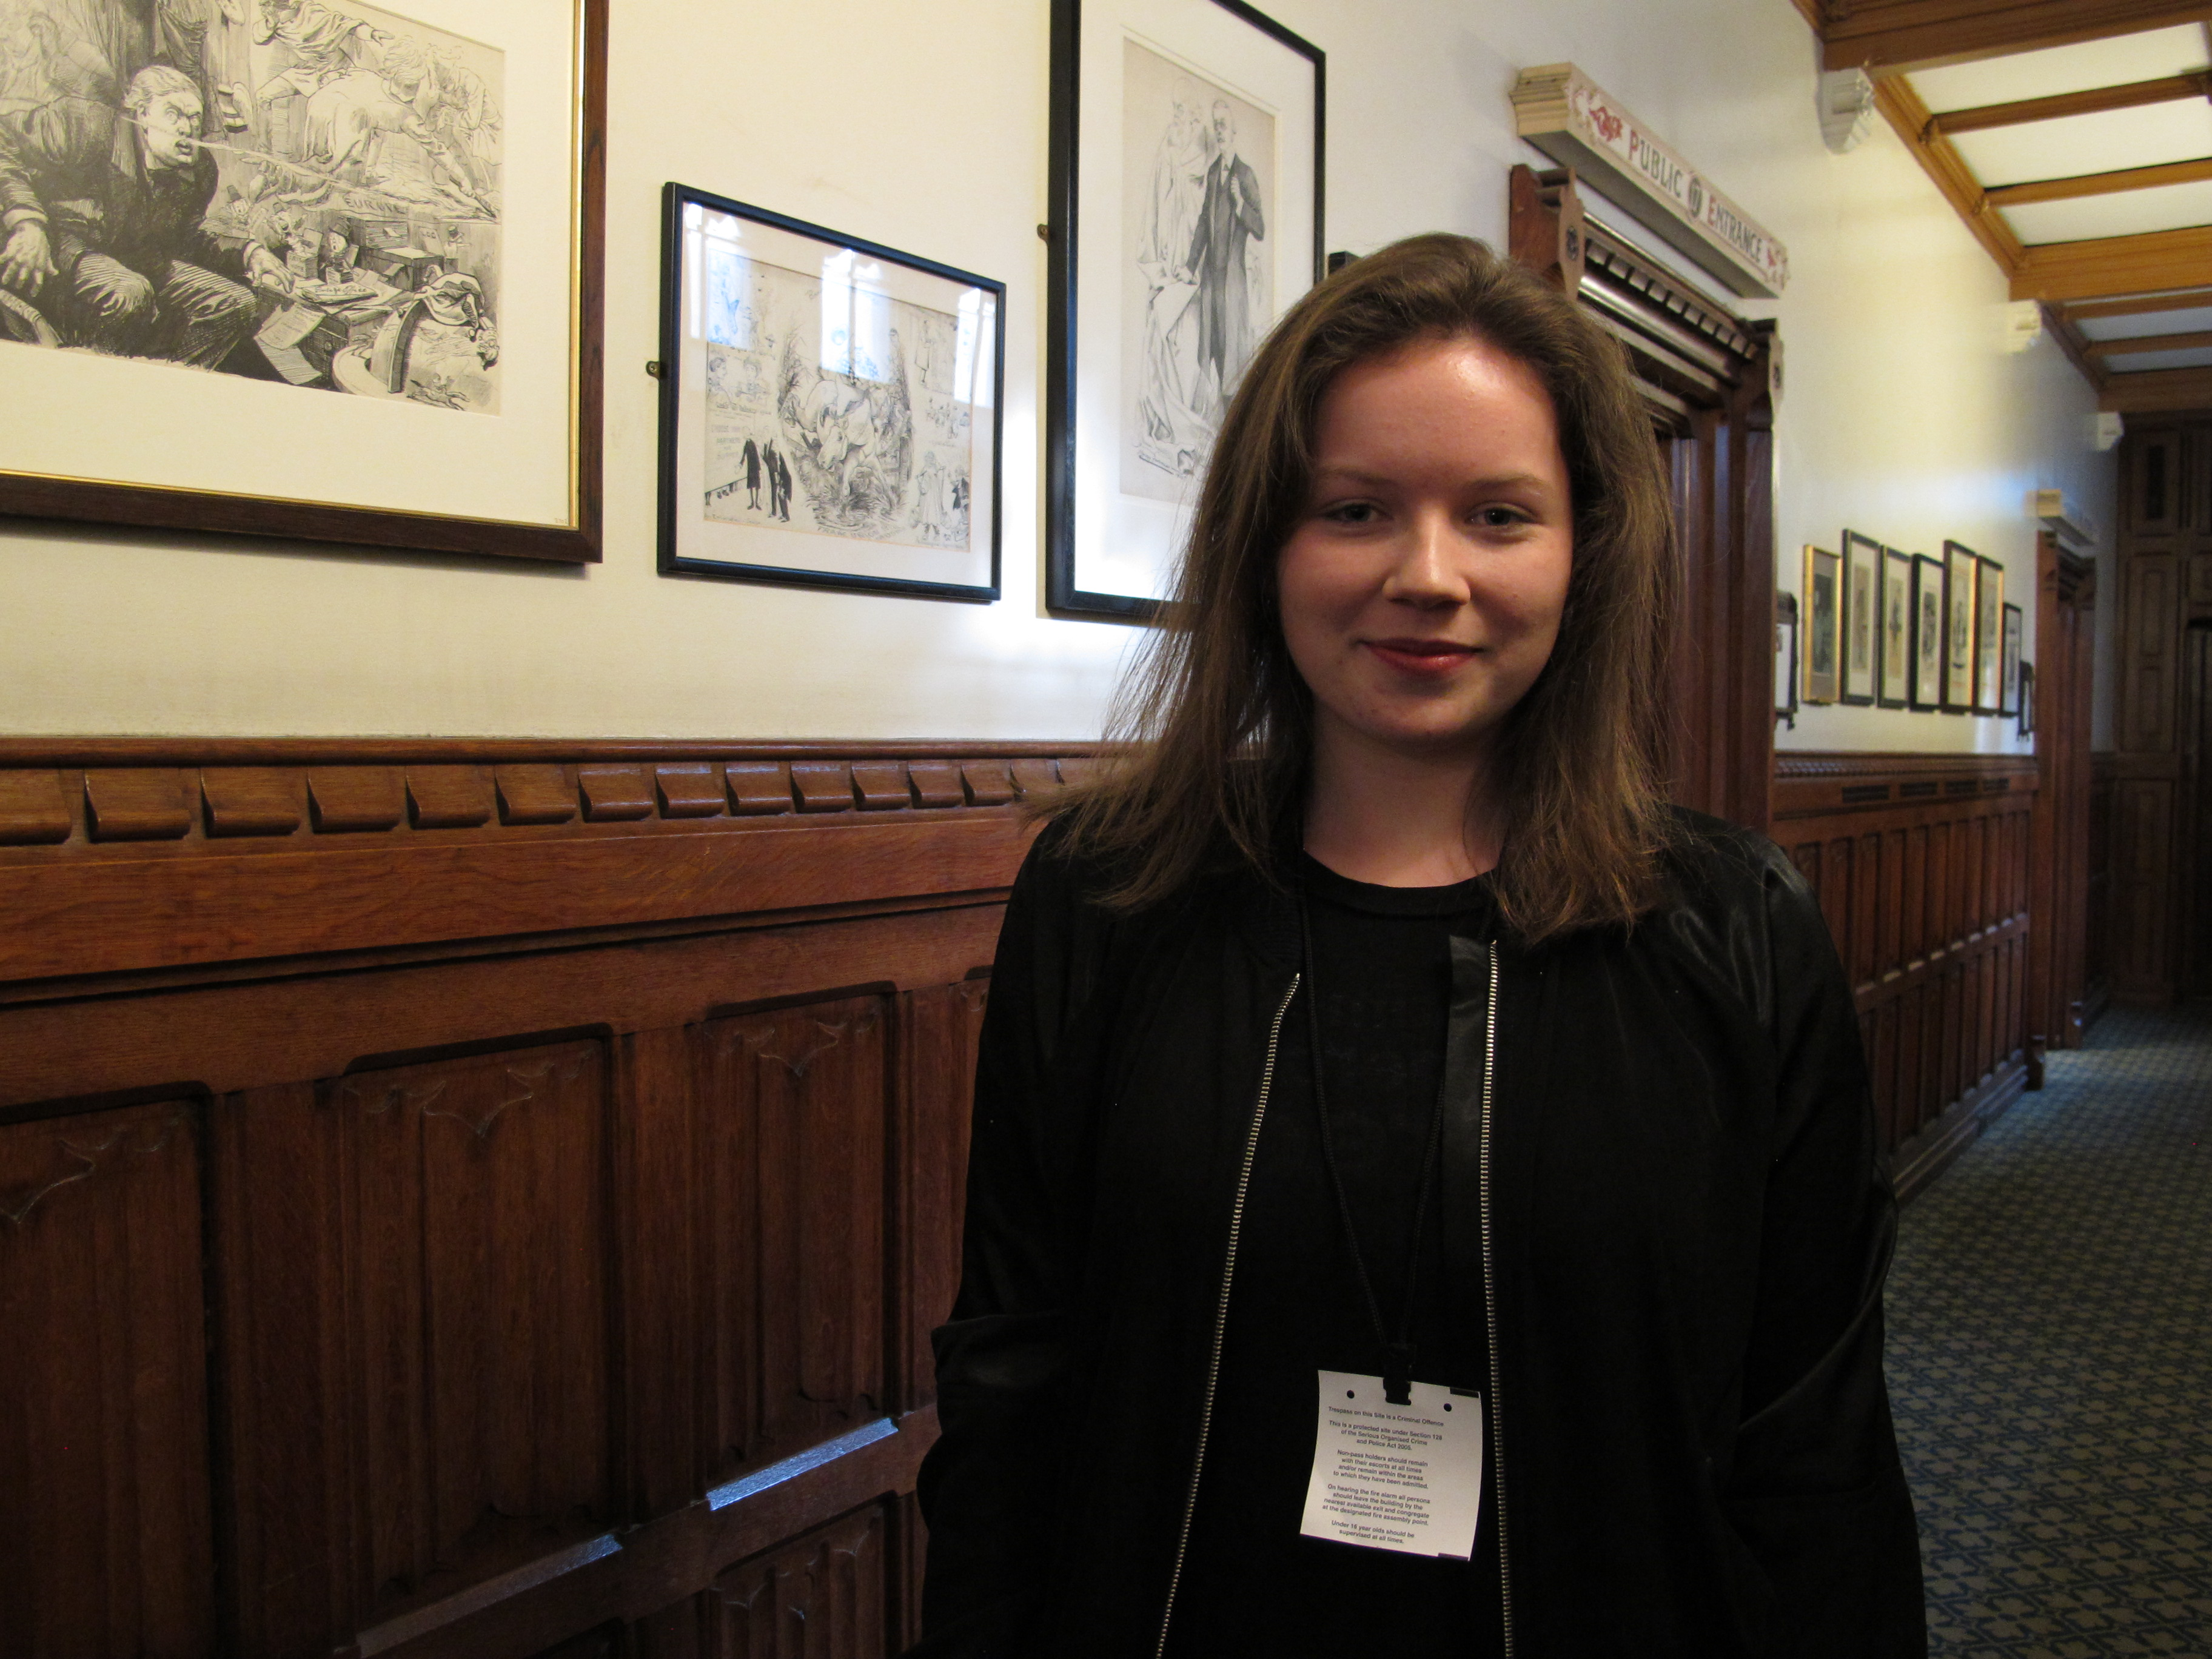 CAFOD supporter Amber in parliament